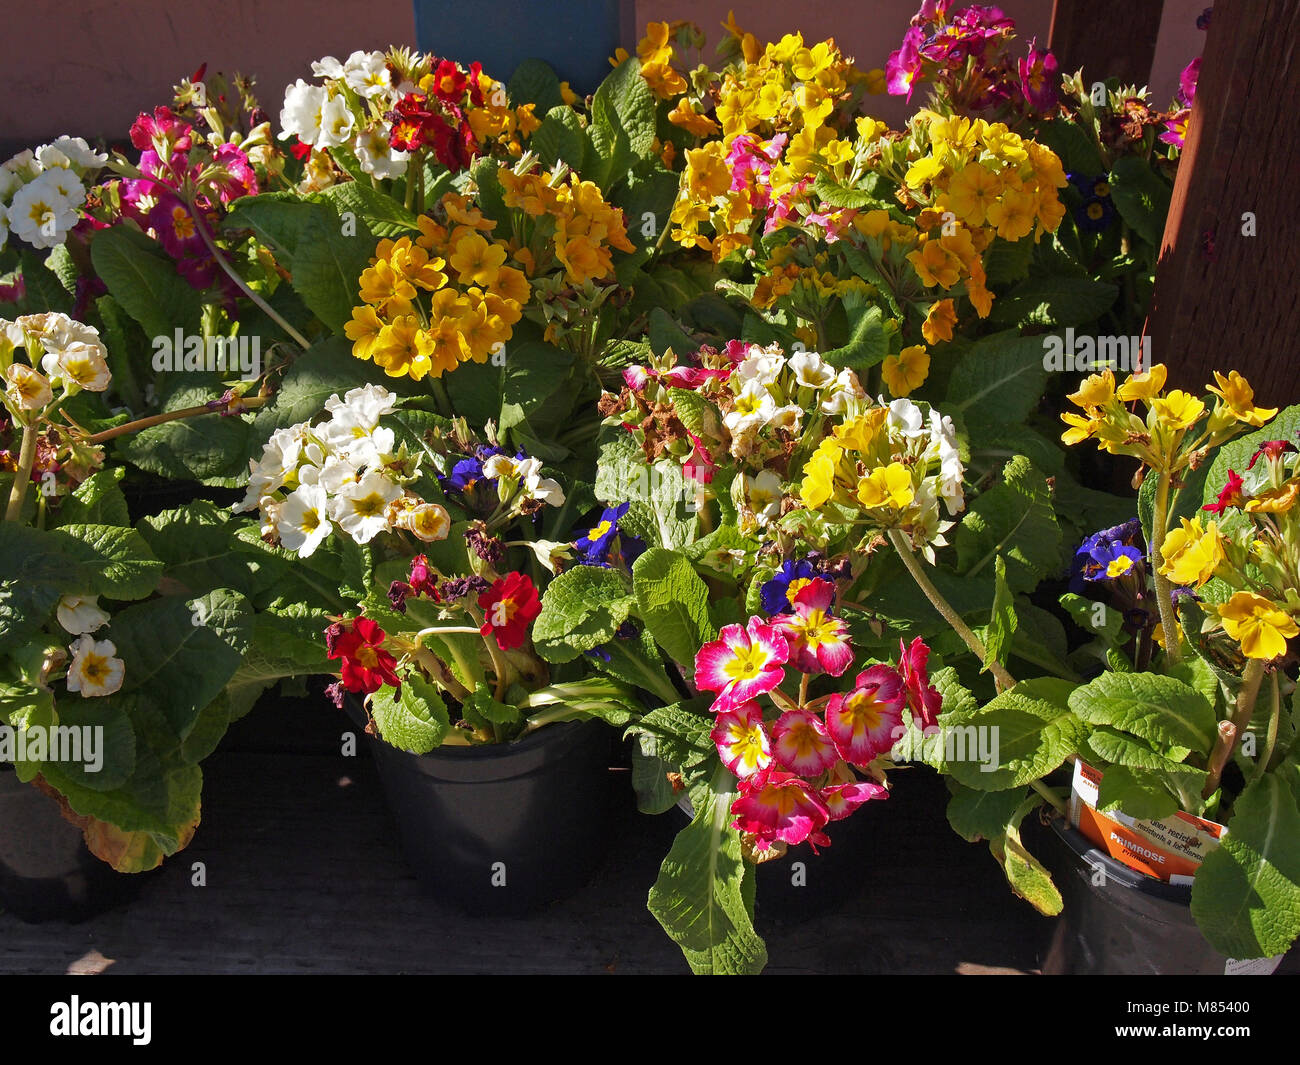 Spring Flowers For Sale At The Home Depot Store California Usa